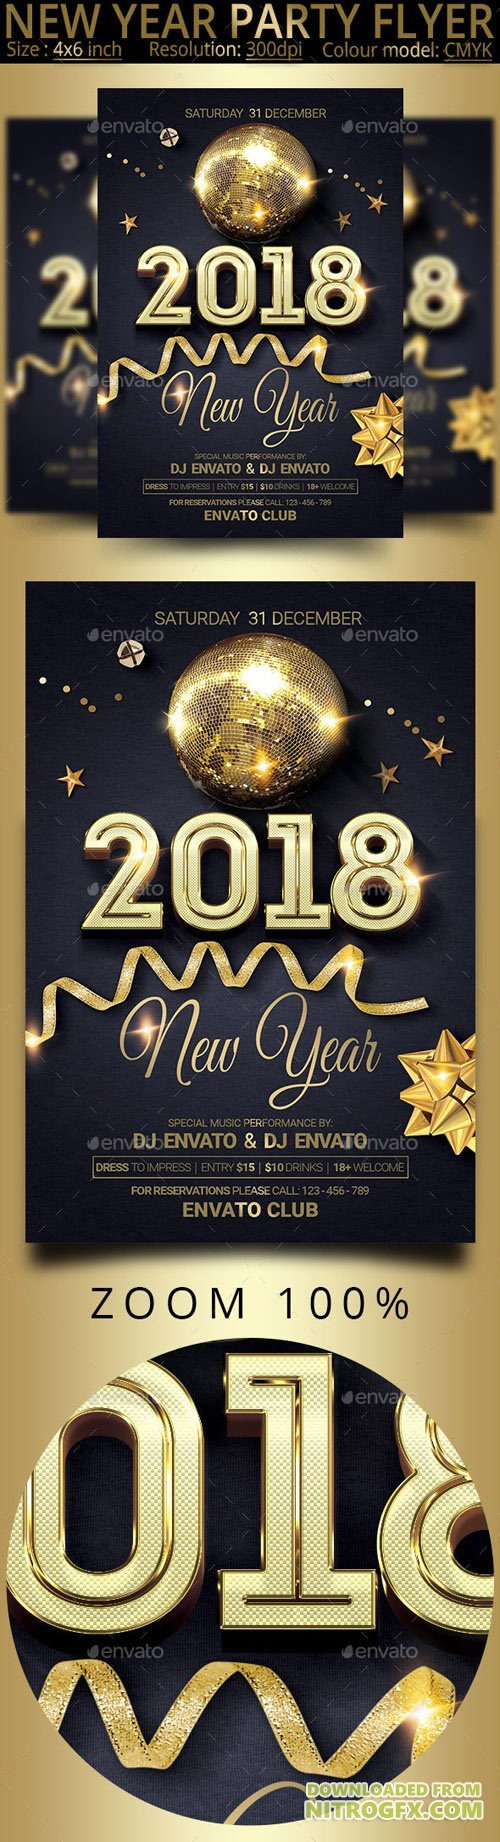 New Year Party Flyer 20772387